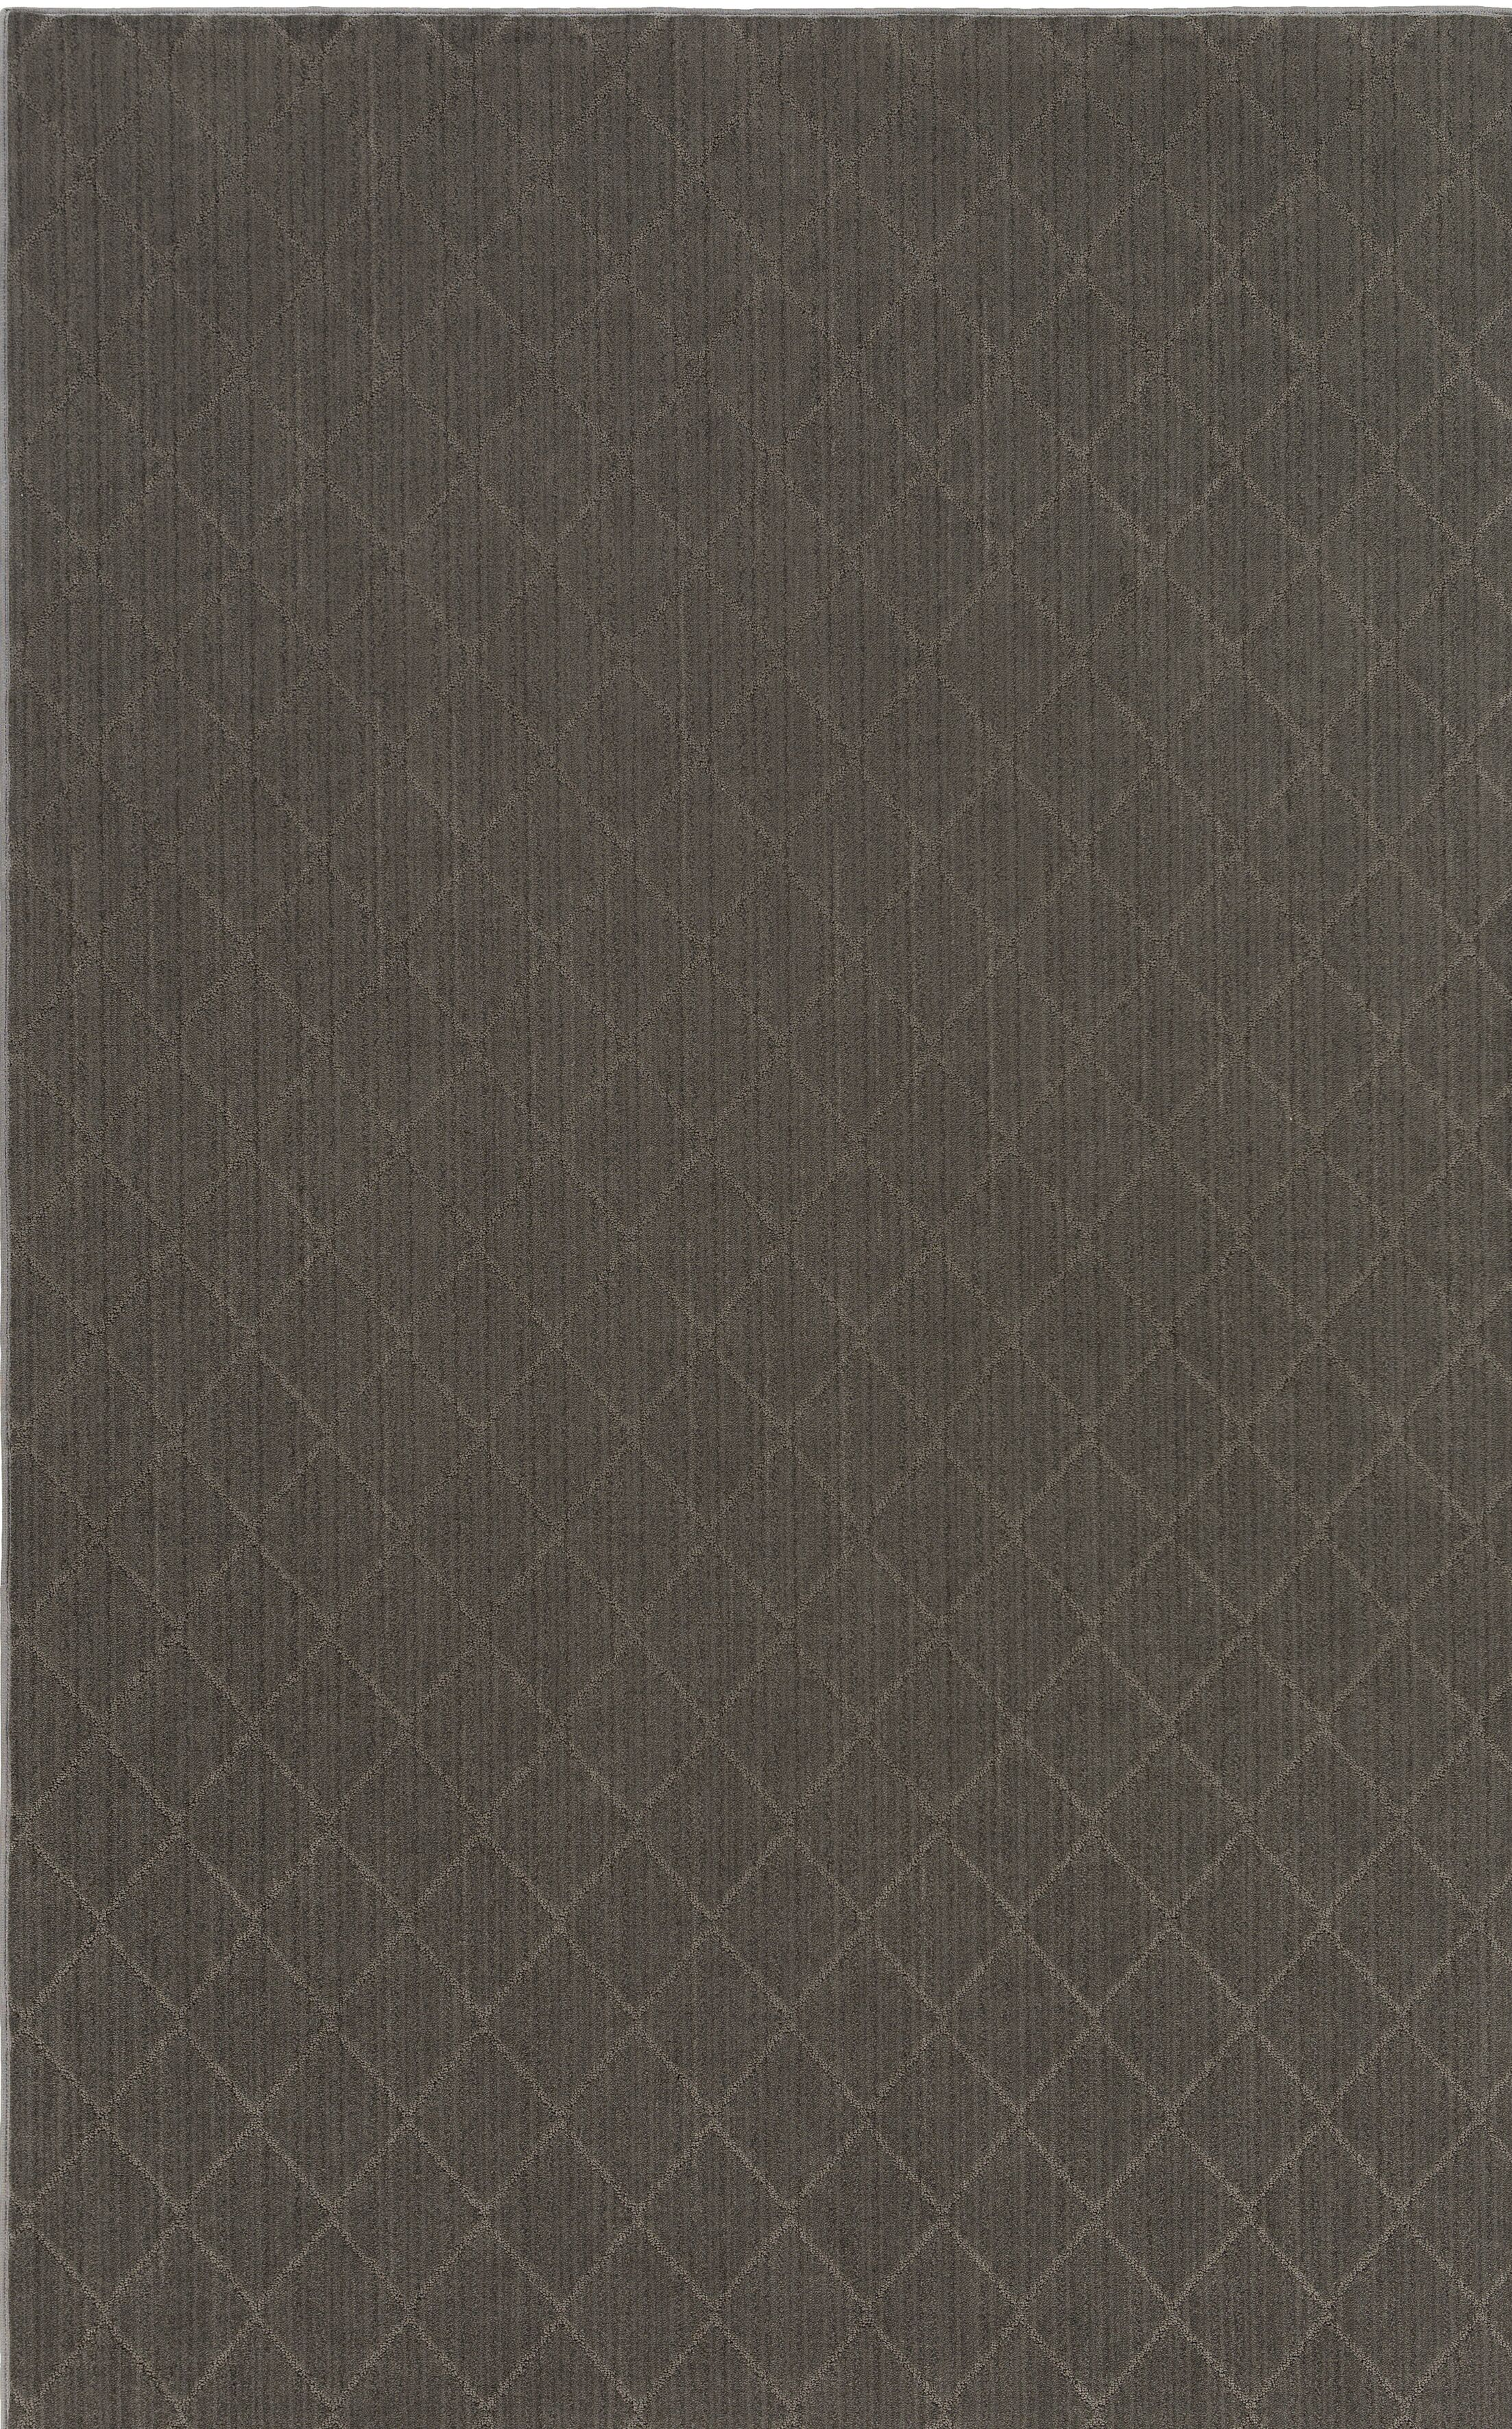 Huxley Gray Area Rug Rug Size: Rectangle 8' x 10'